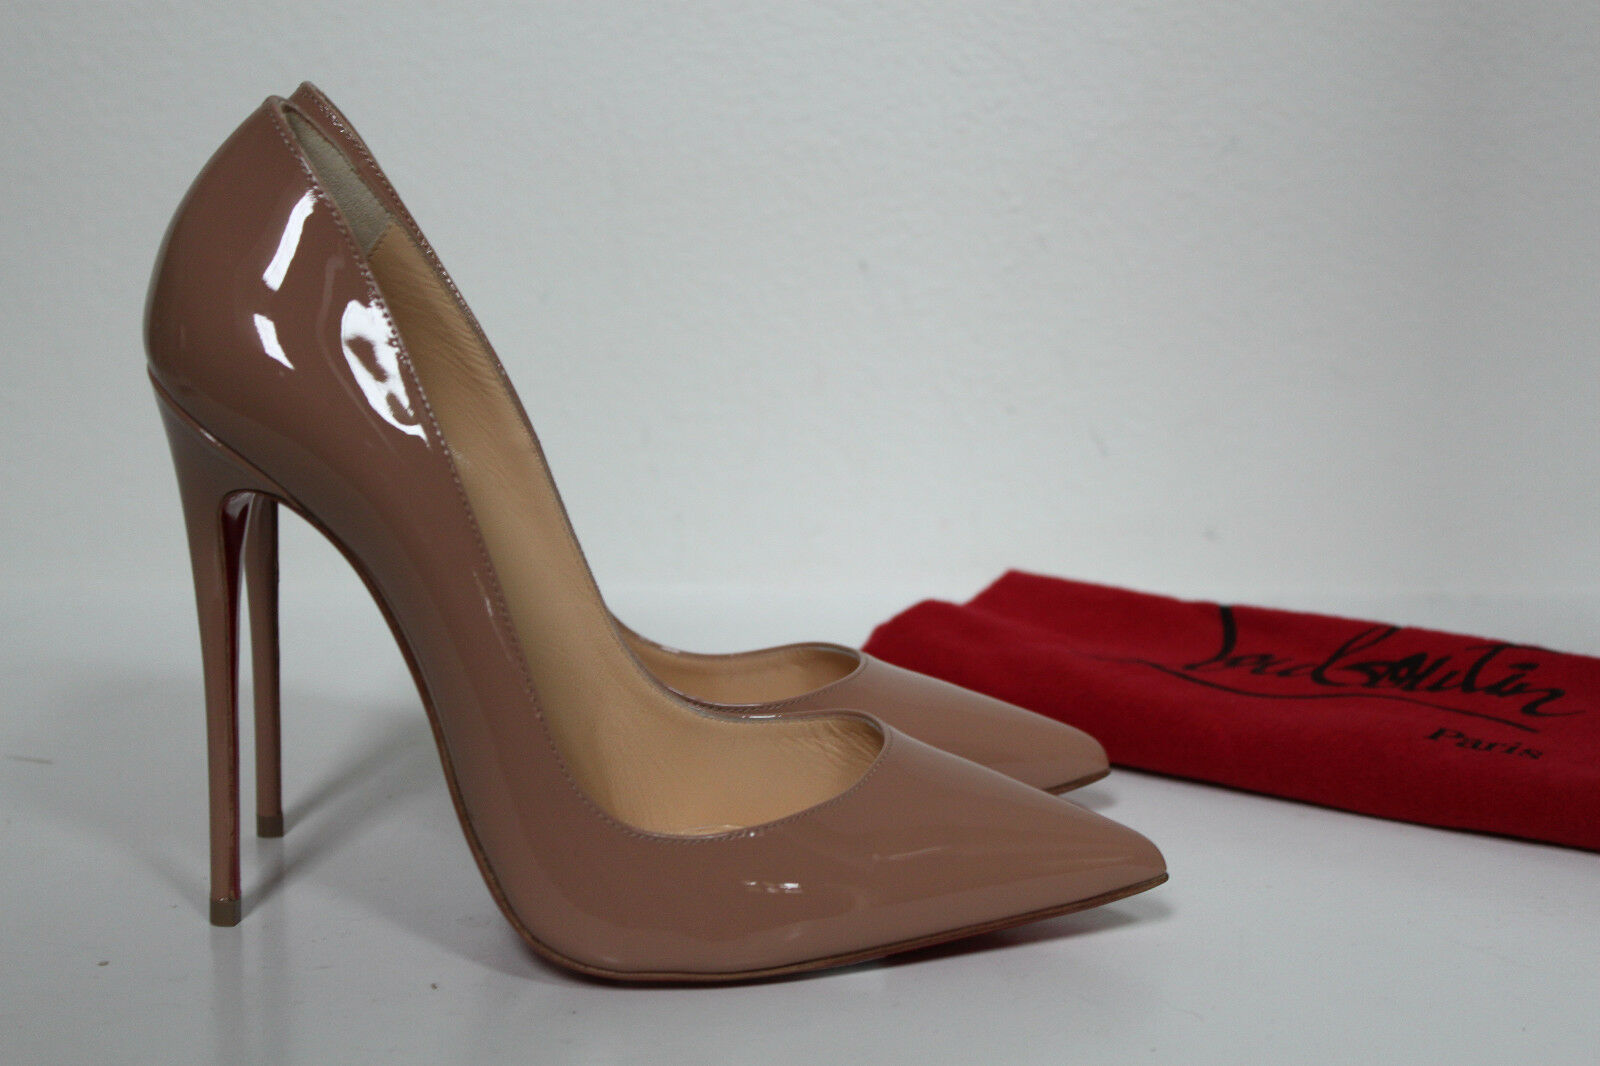 New sz 9.5 9.5 sz / 40 Christian Louboutin Nude Patent So Kate Pointed Toe Pump schuhes f5c0b5